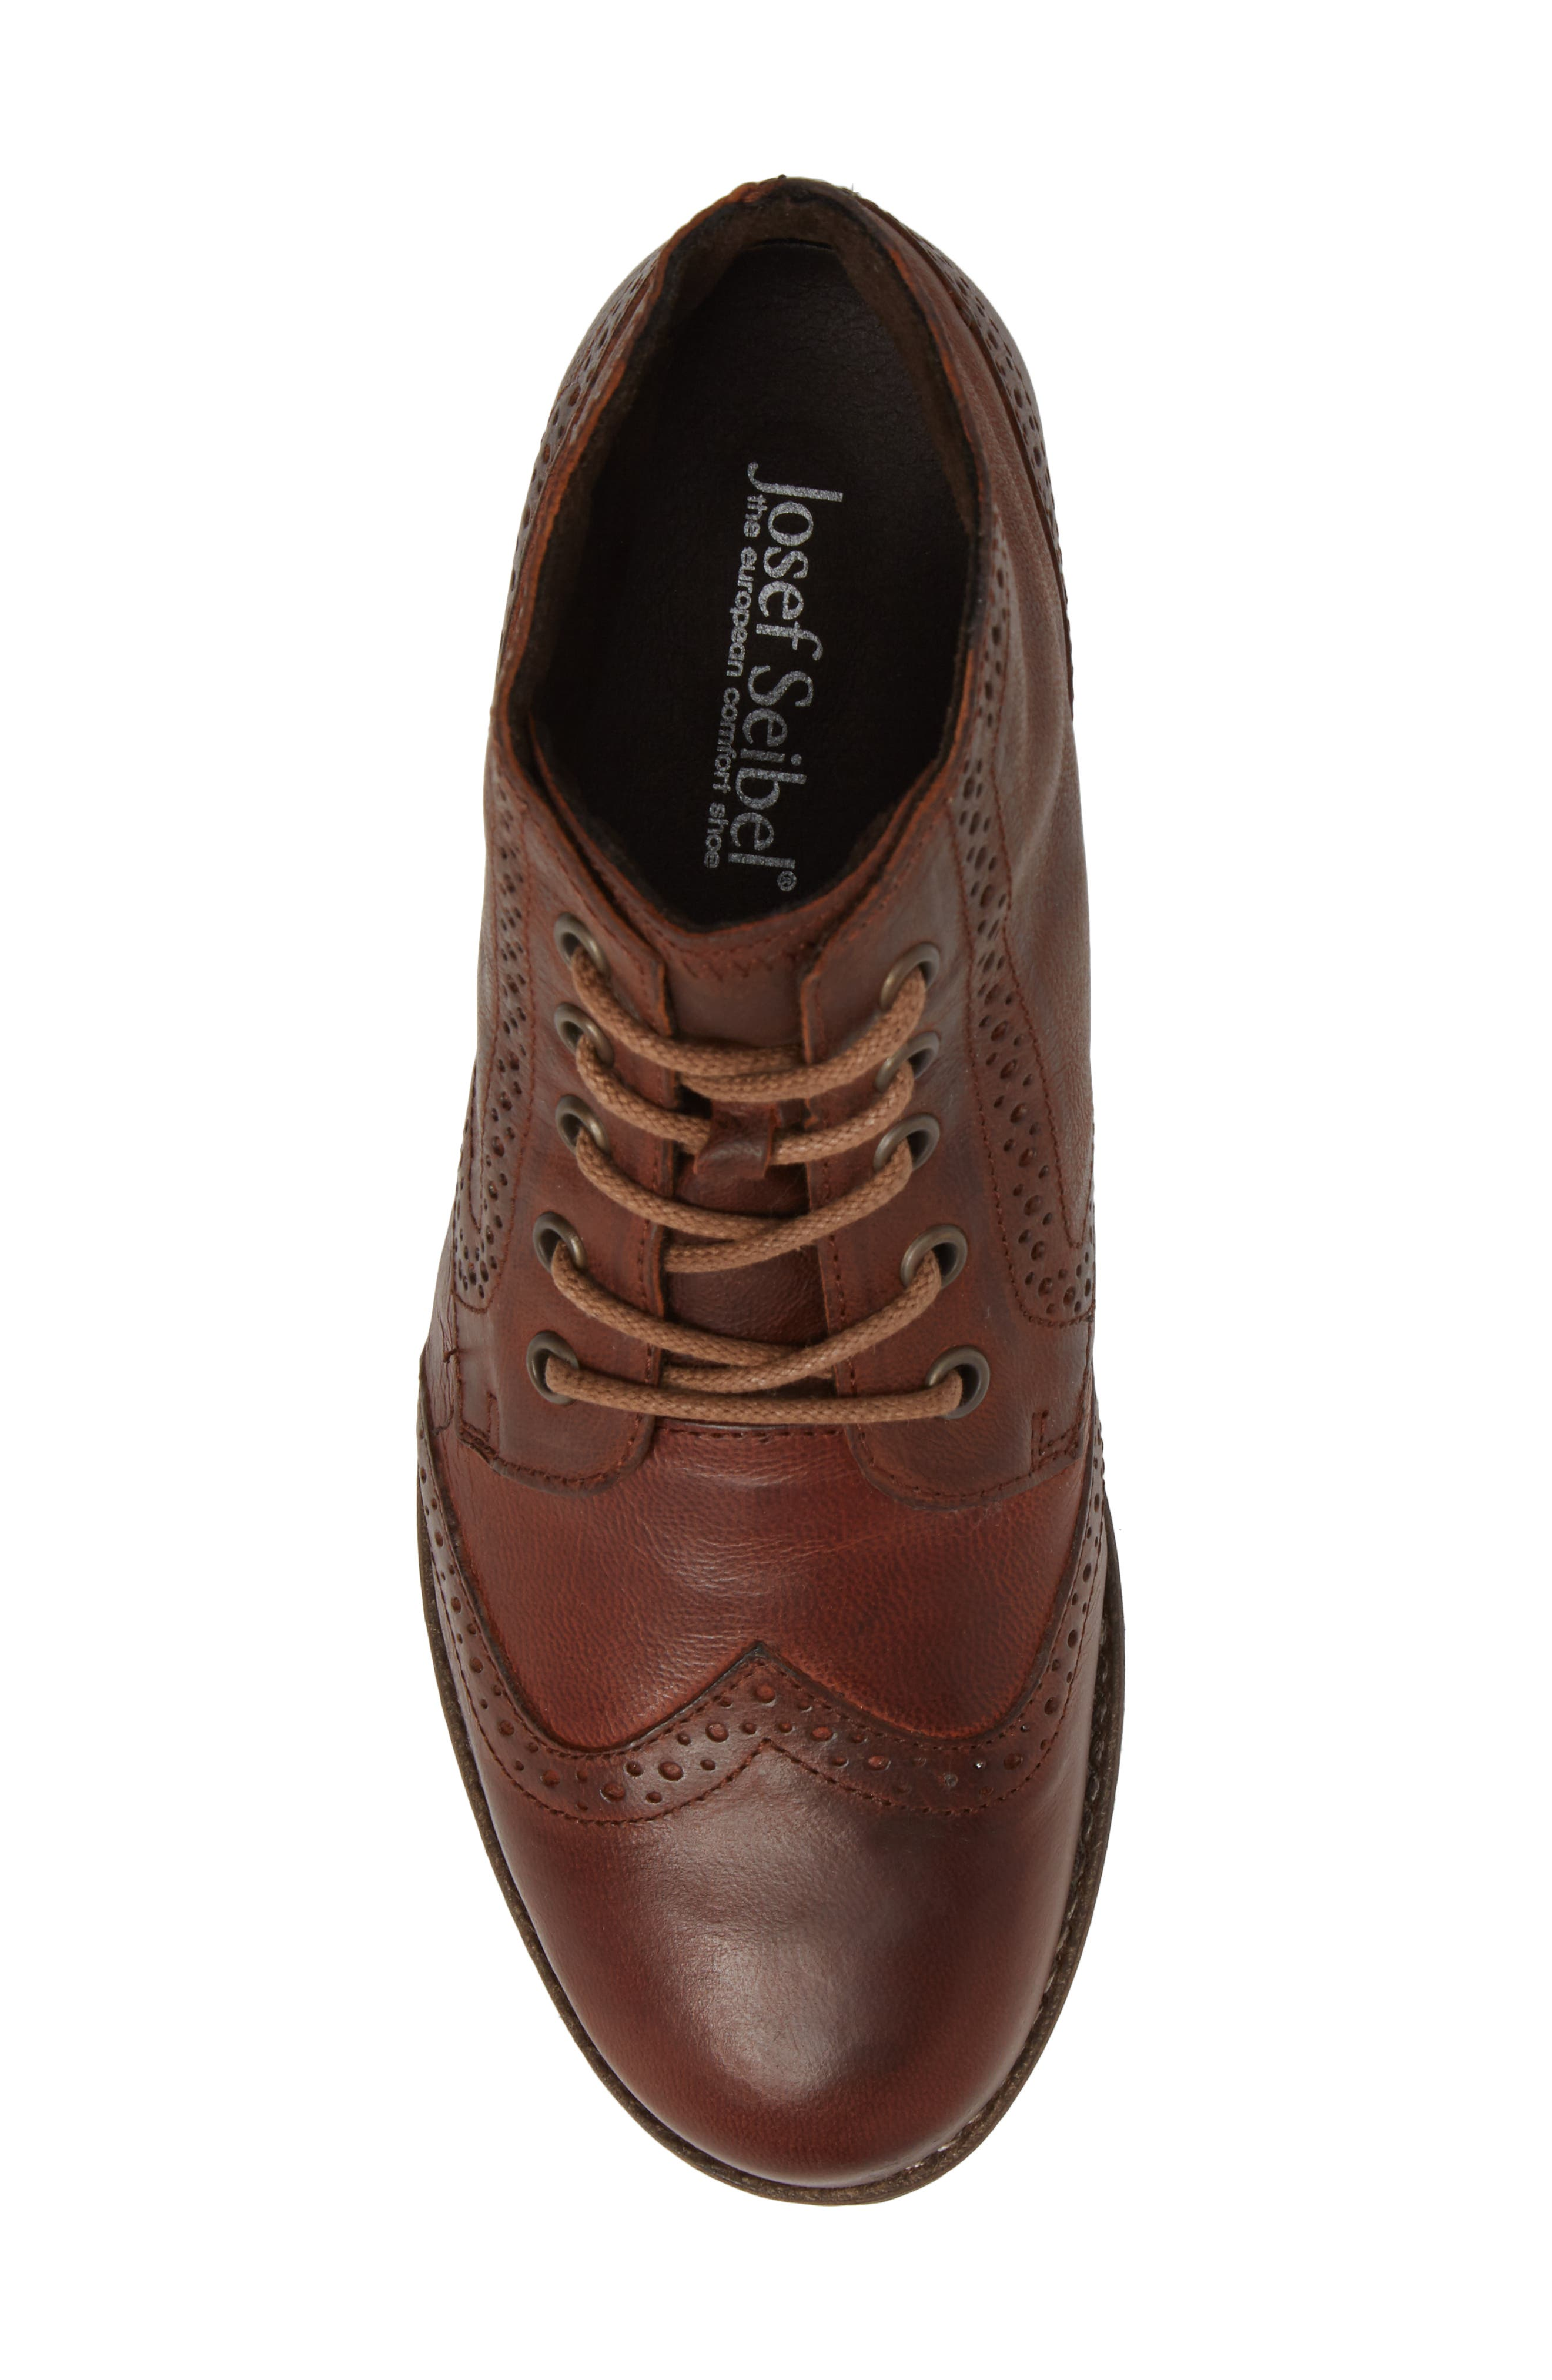 'Sienna 15' Wingtip Bootie,                             Alternate thumbnail 5, color,                             Camel Leather